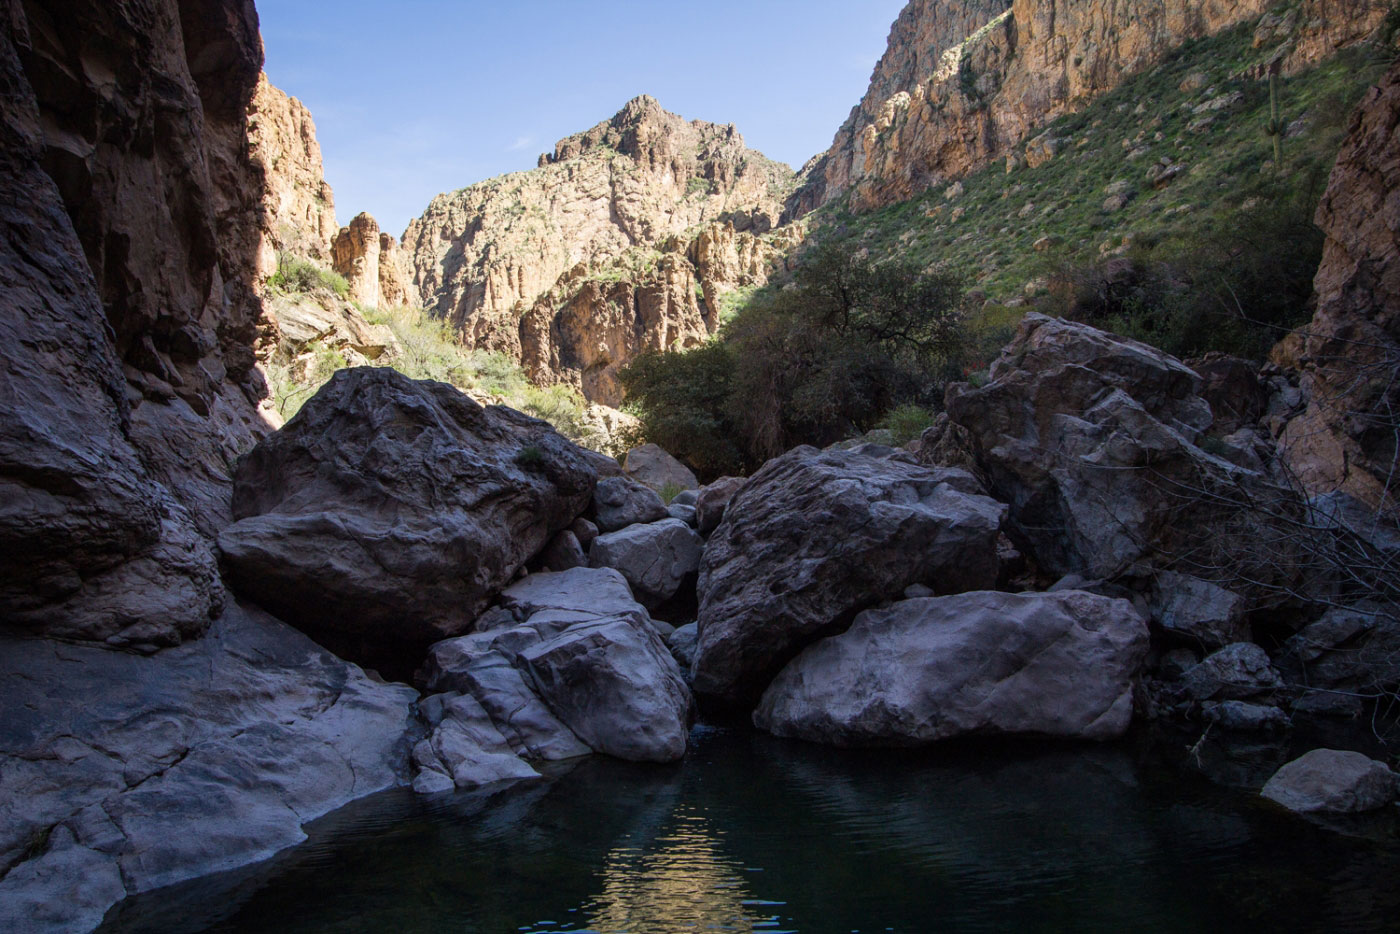 Hiking Peter S Canyon To Cave In Tonto National Forest